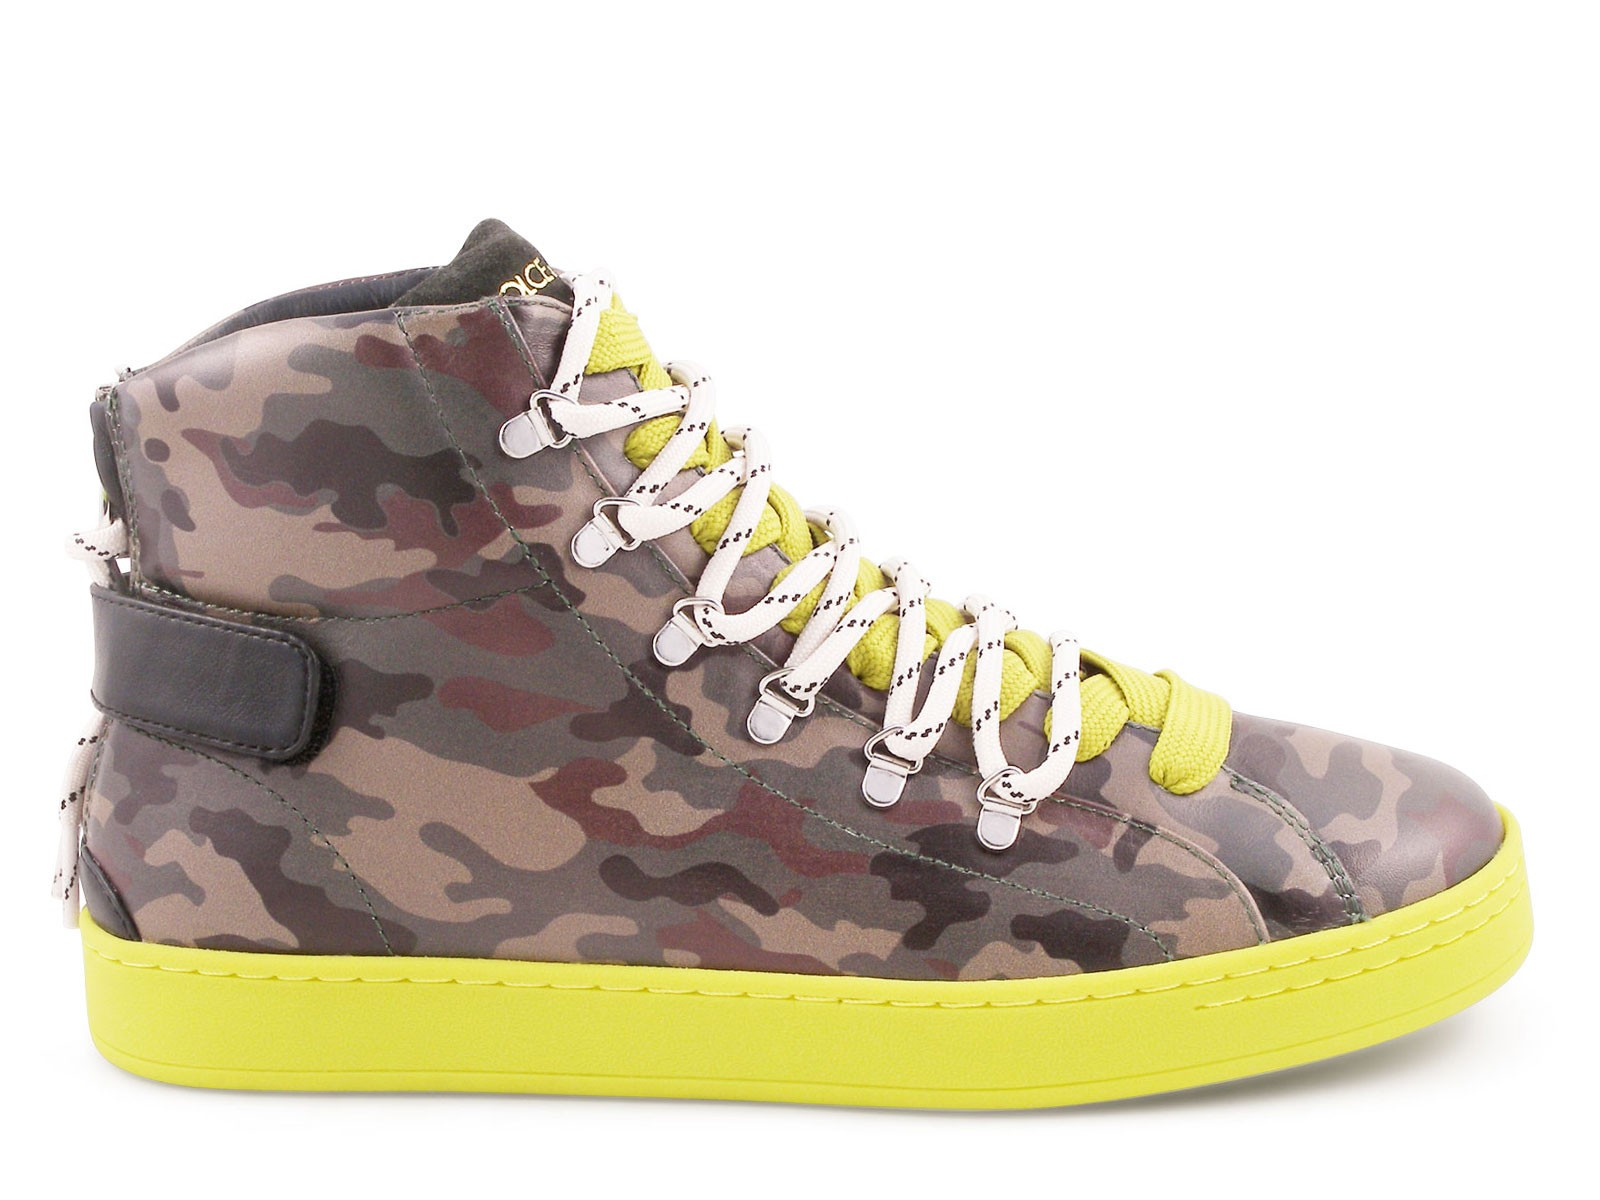 dolce gabbana sneakers in camouflage calf leather up shoes mod cs1247 ap129 8v533 7store. Black Bedroom Furniture Sets. Home Design Ideas